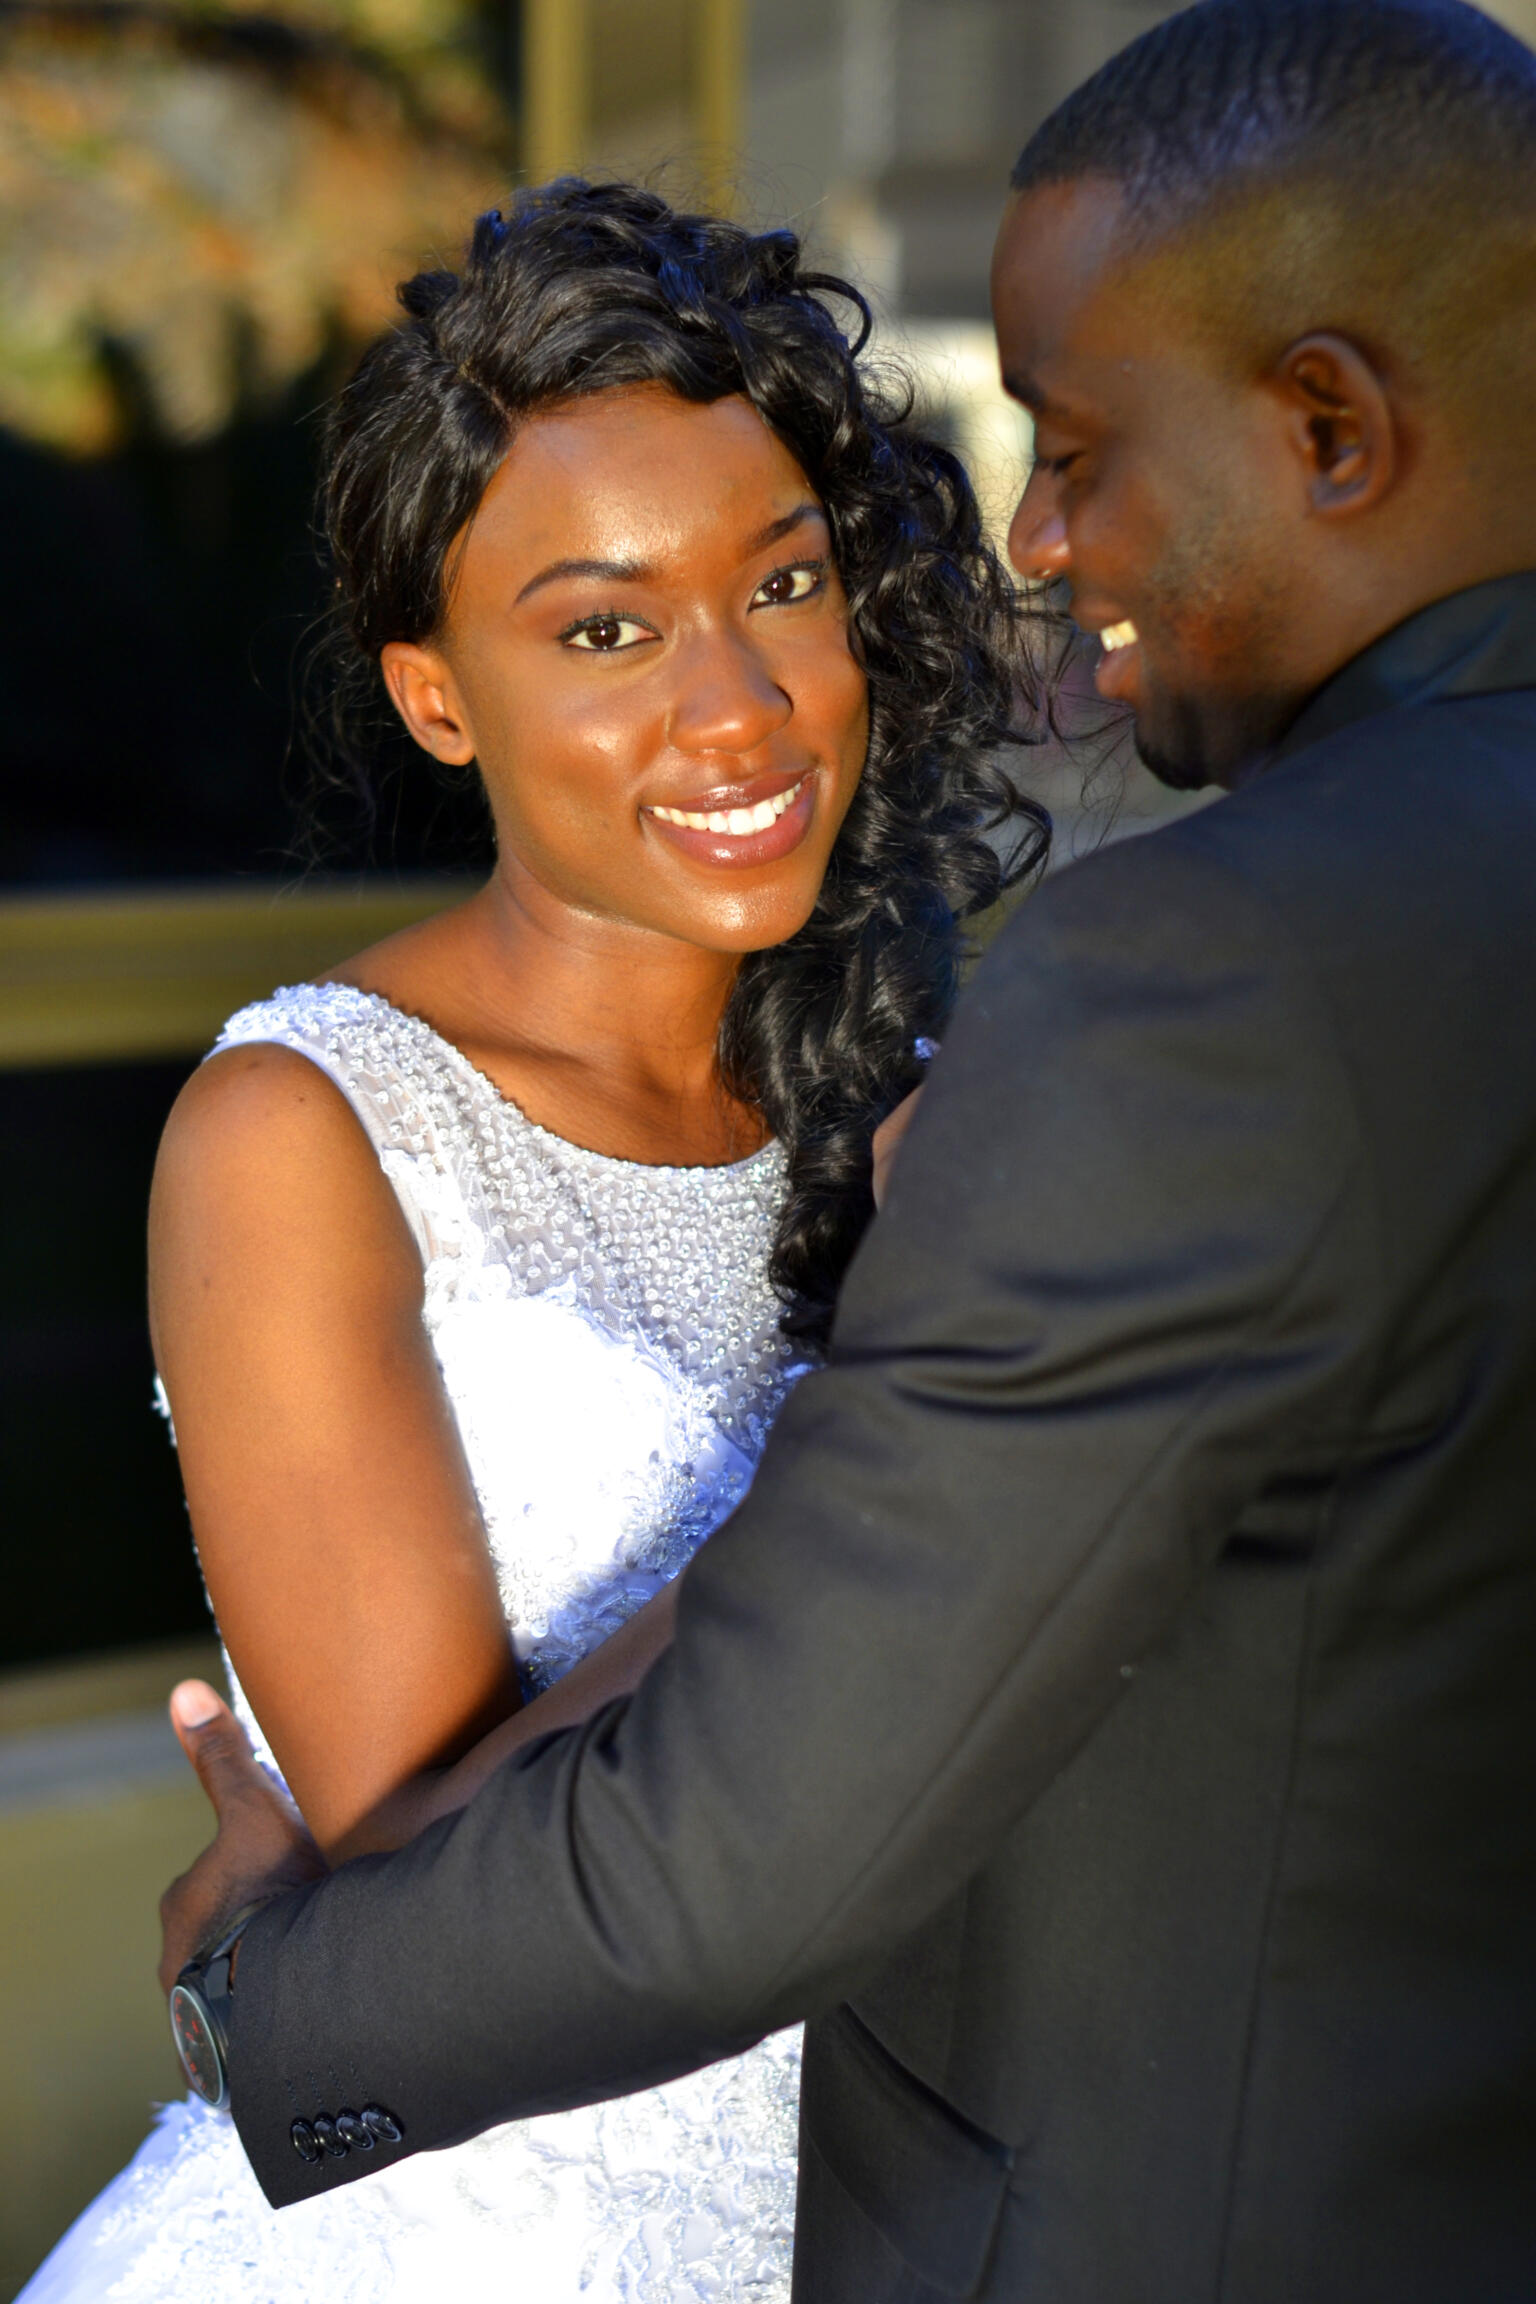 Bride with groom smiling